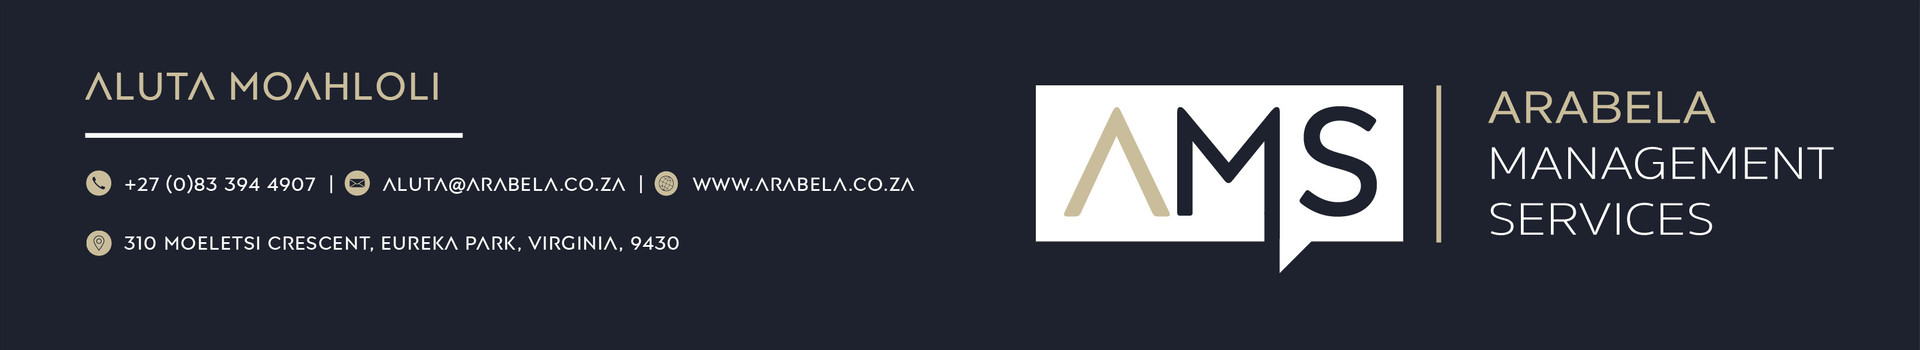 Arabela Management Services